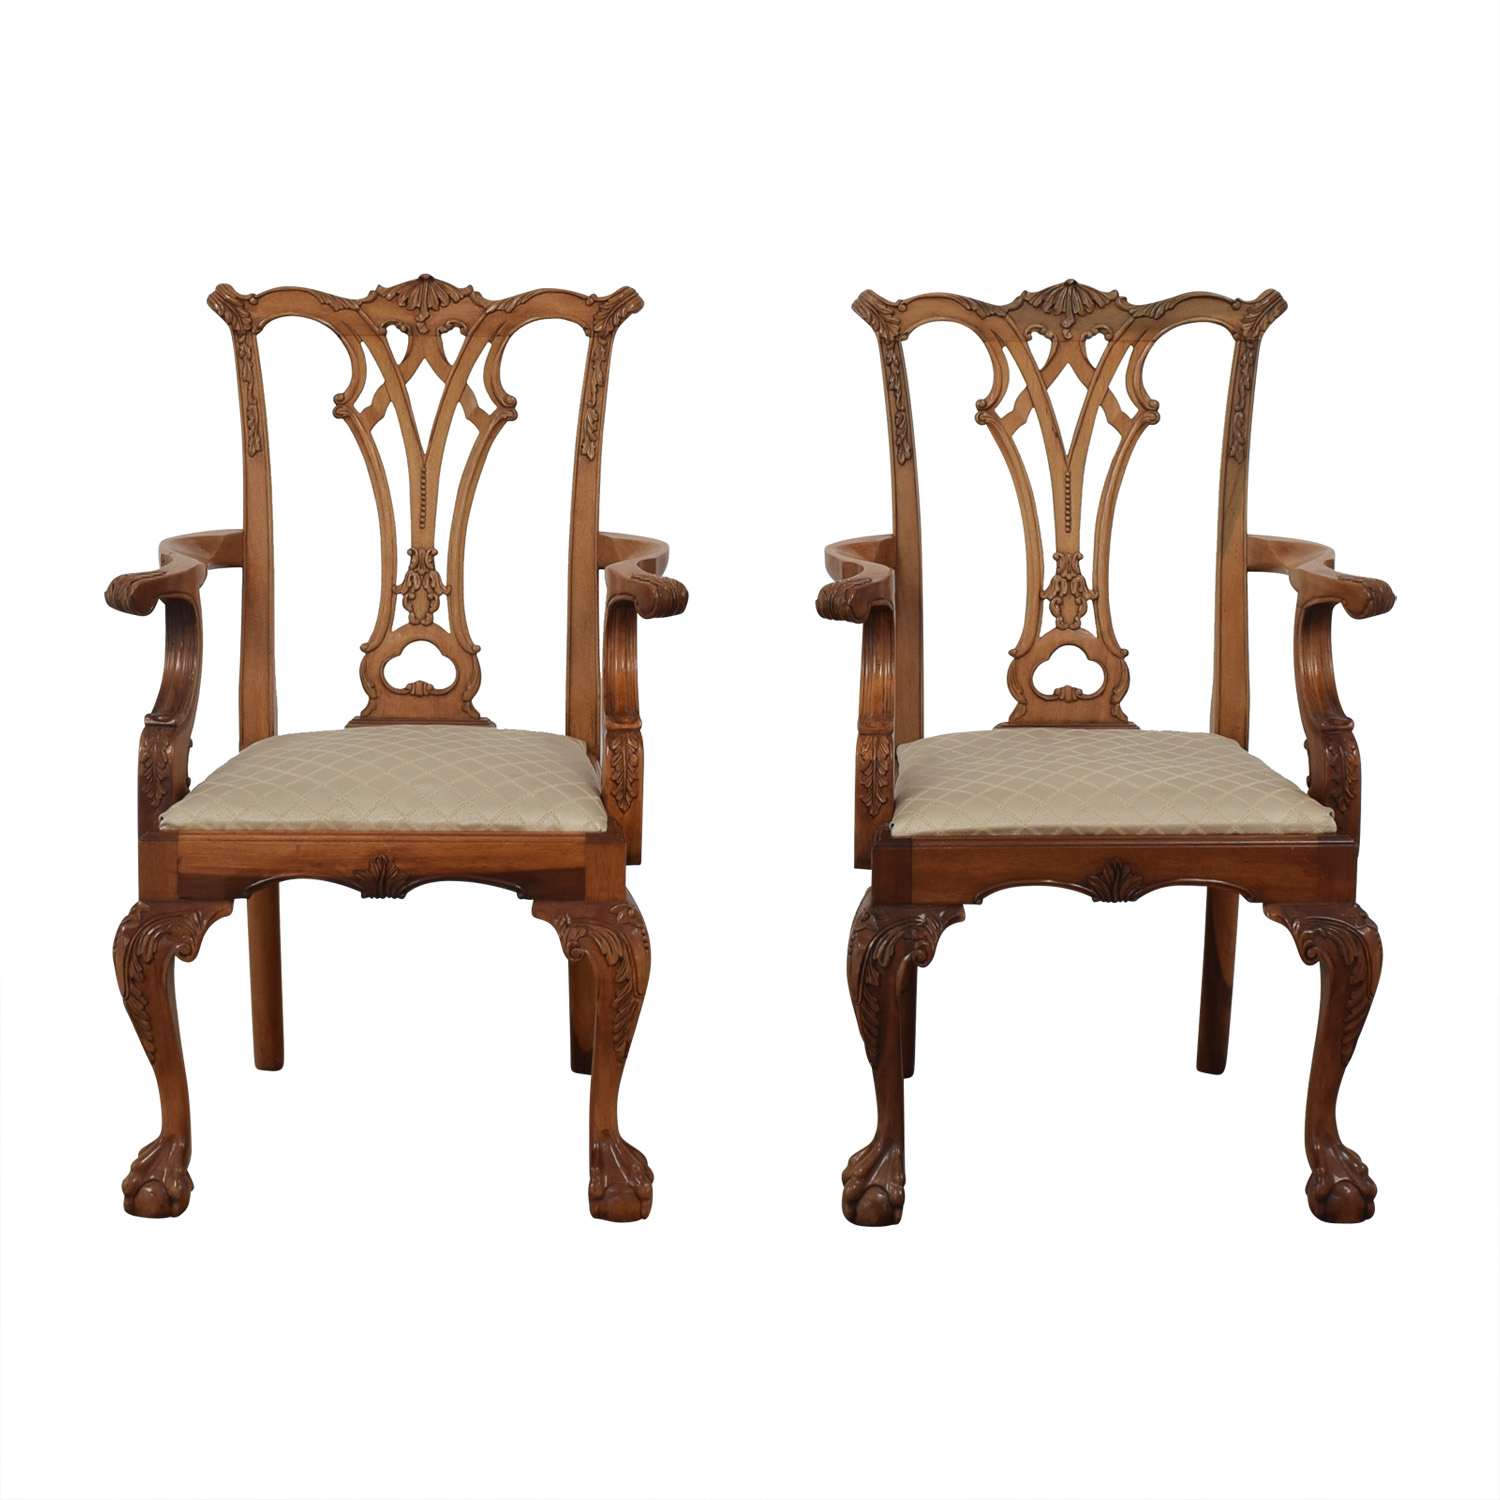 Chippendale Chippendale Arm Chairs for sale